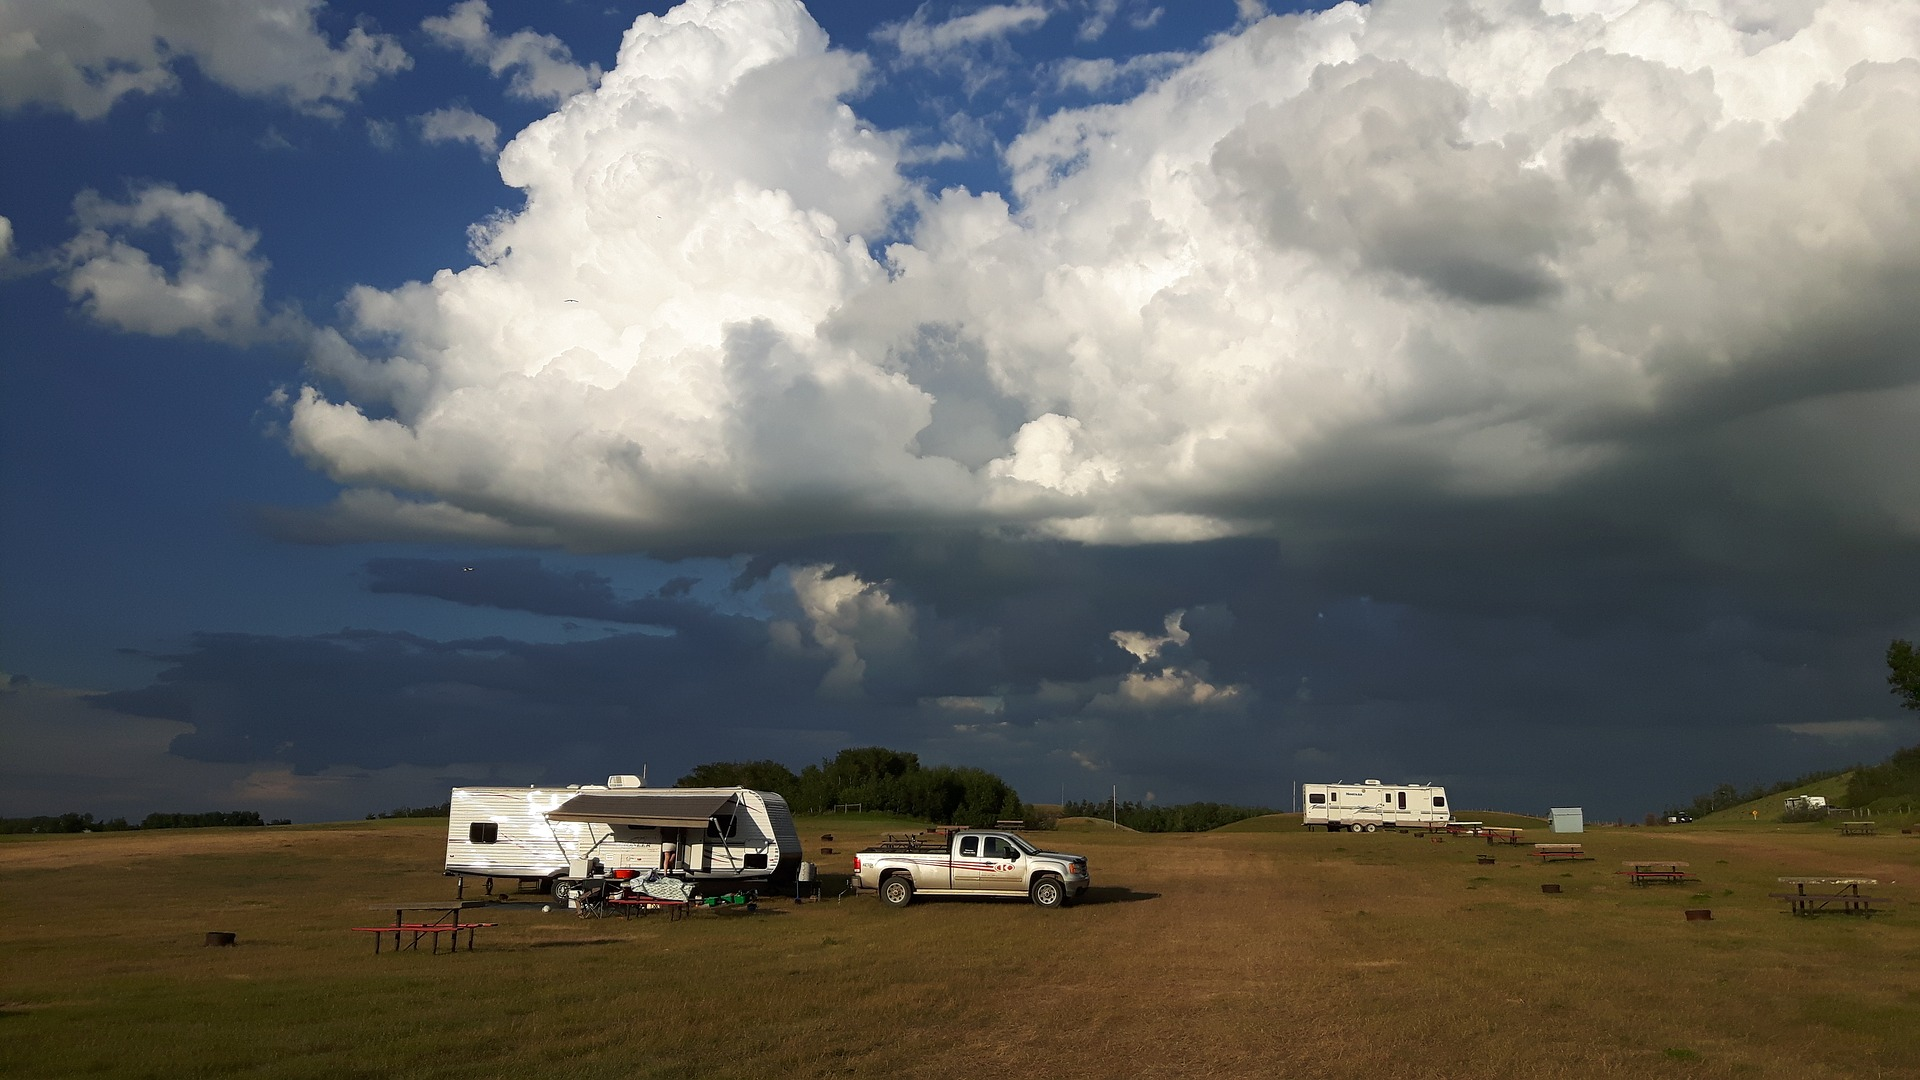 RV Camping in Inclement Weather